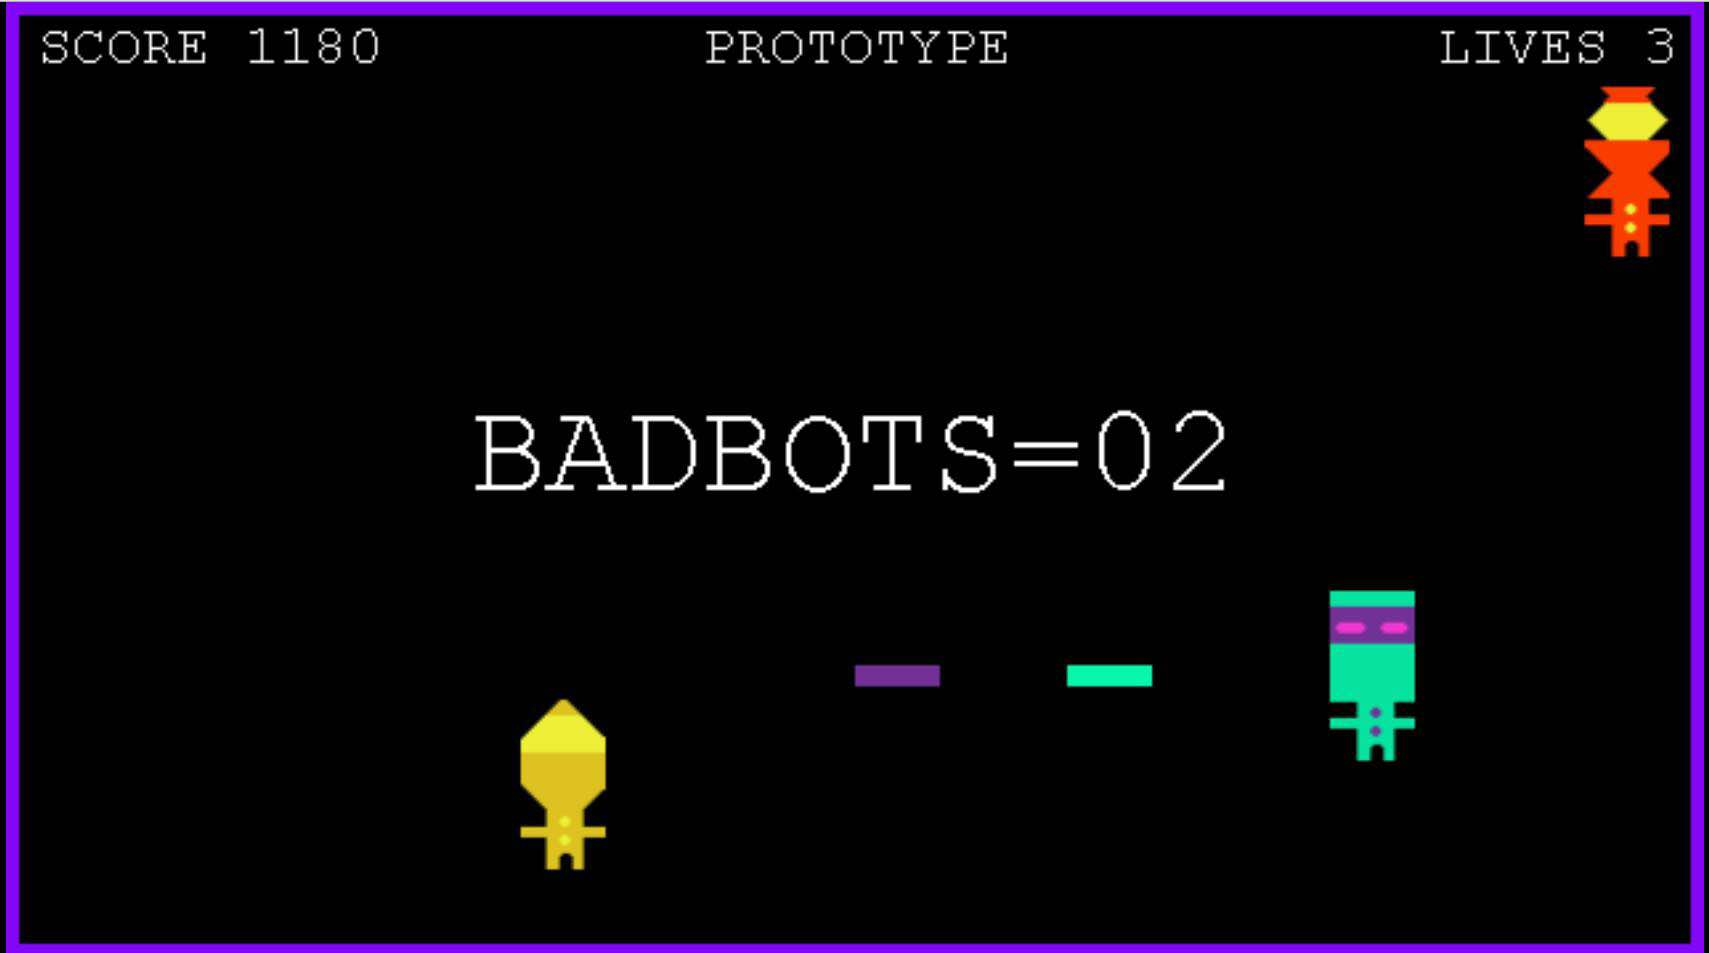 'Robo Ricochet' displays the player's cool colored bot fighting the warm colored bad bots. The game is developed solely by AJ Ryan.